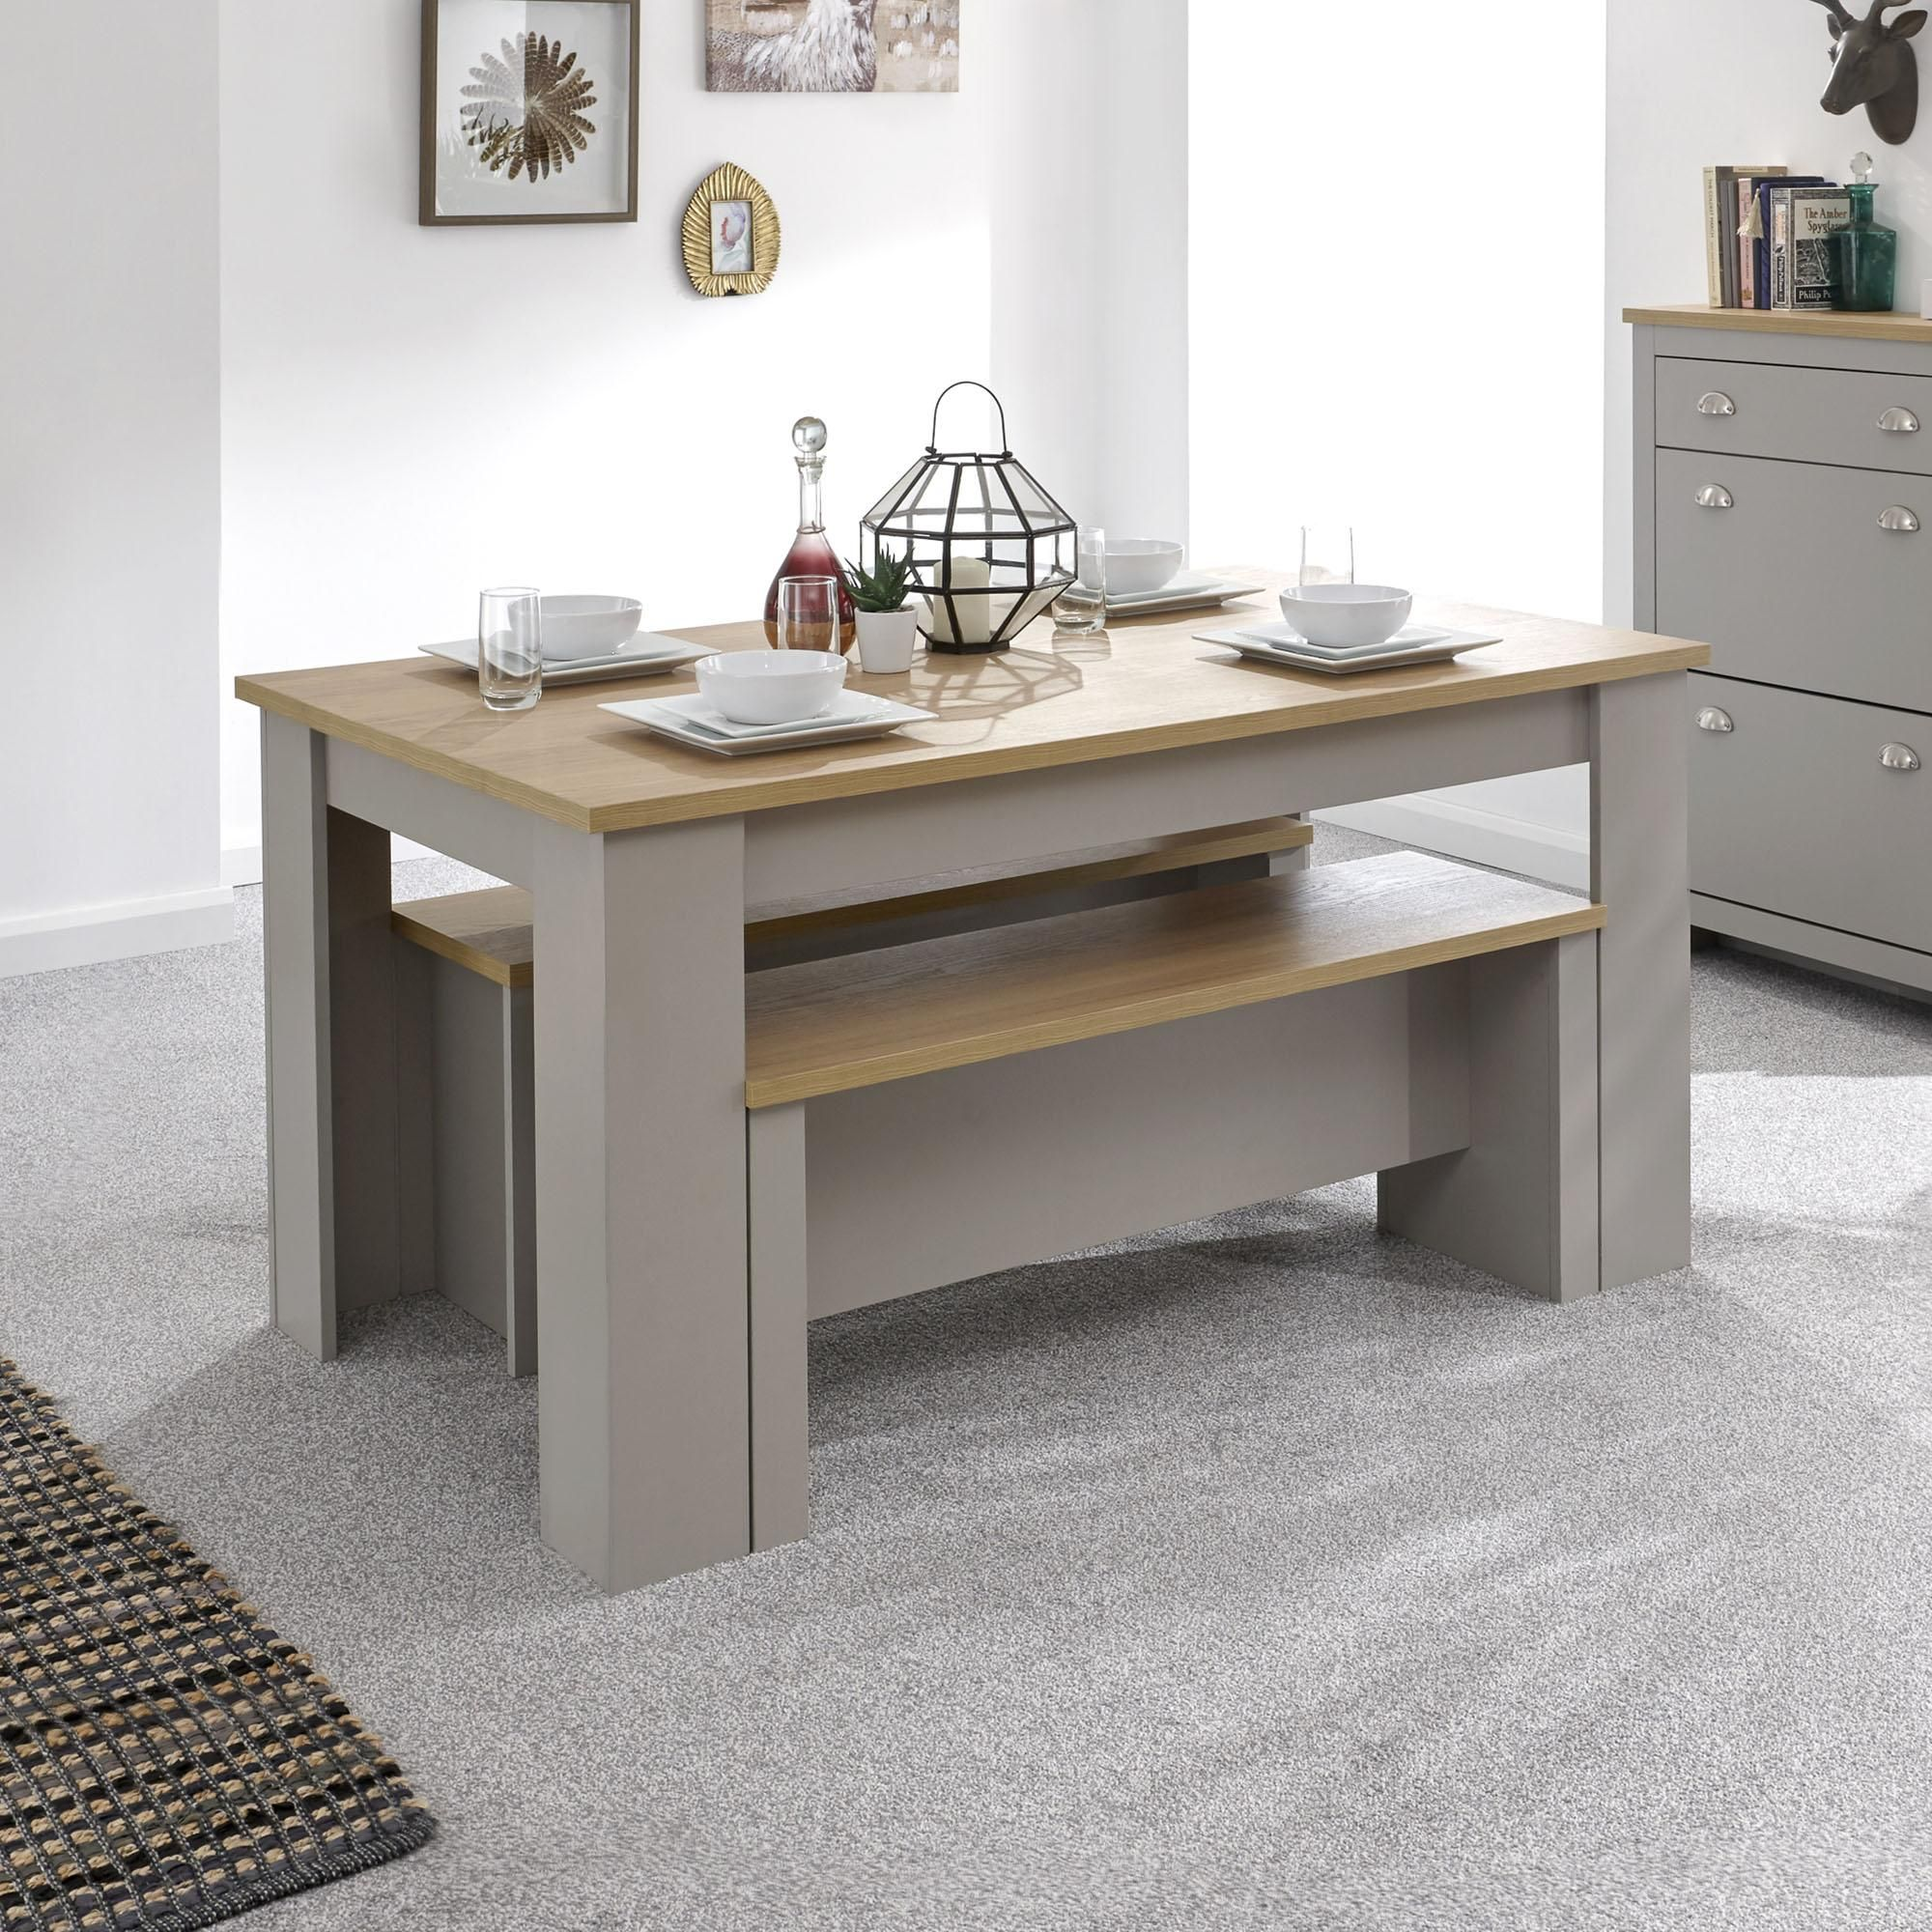 34+ Small dining room table set with bench Best